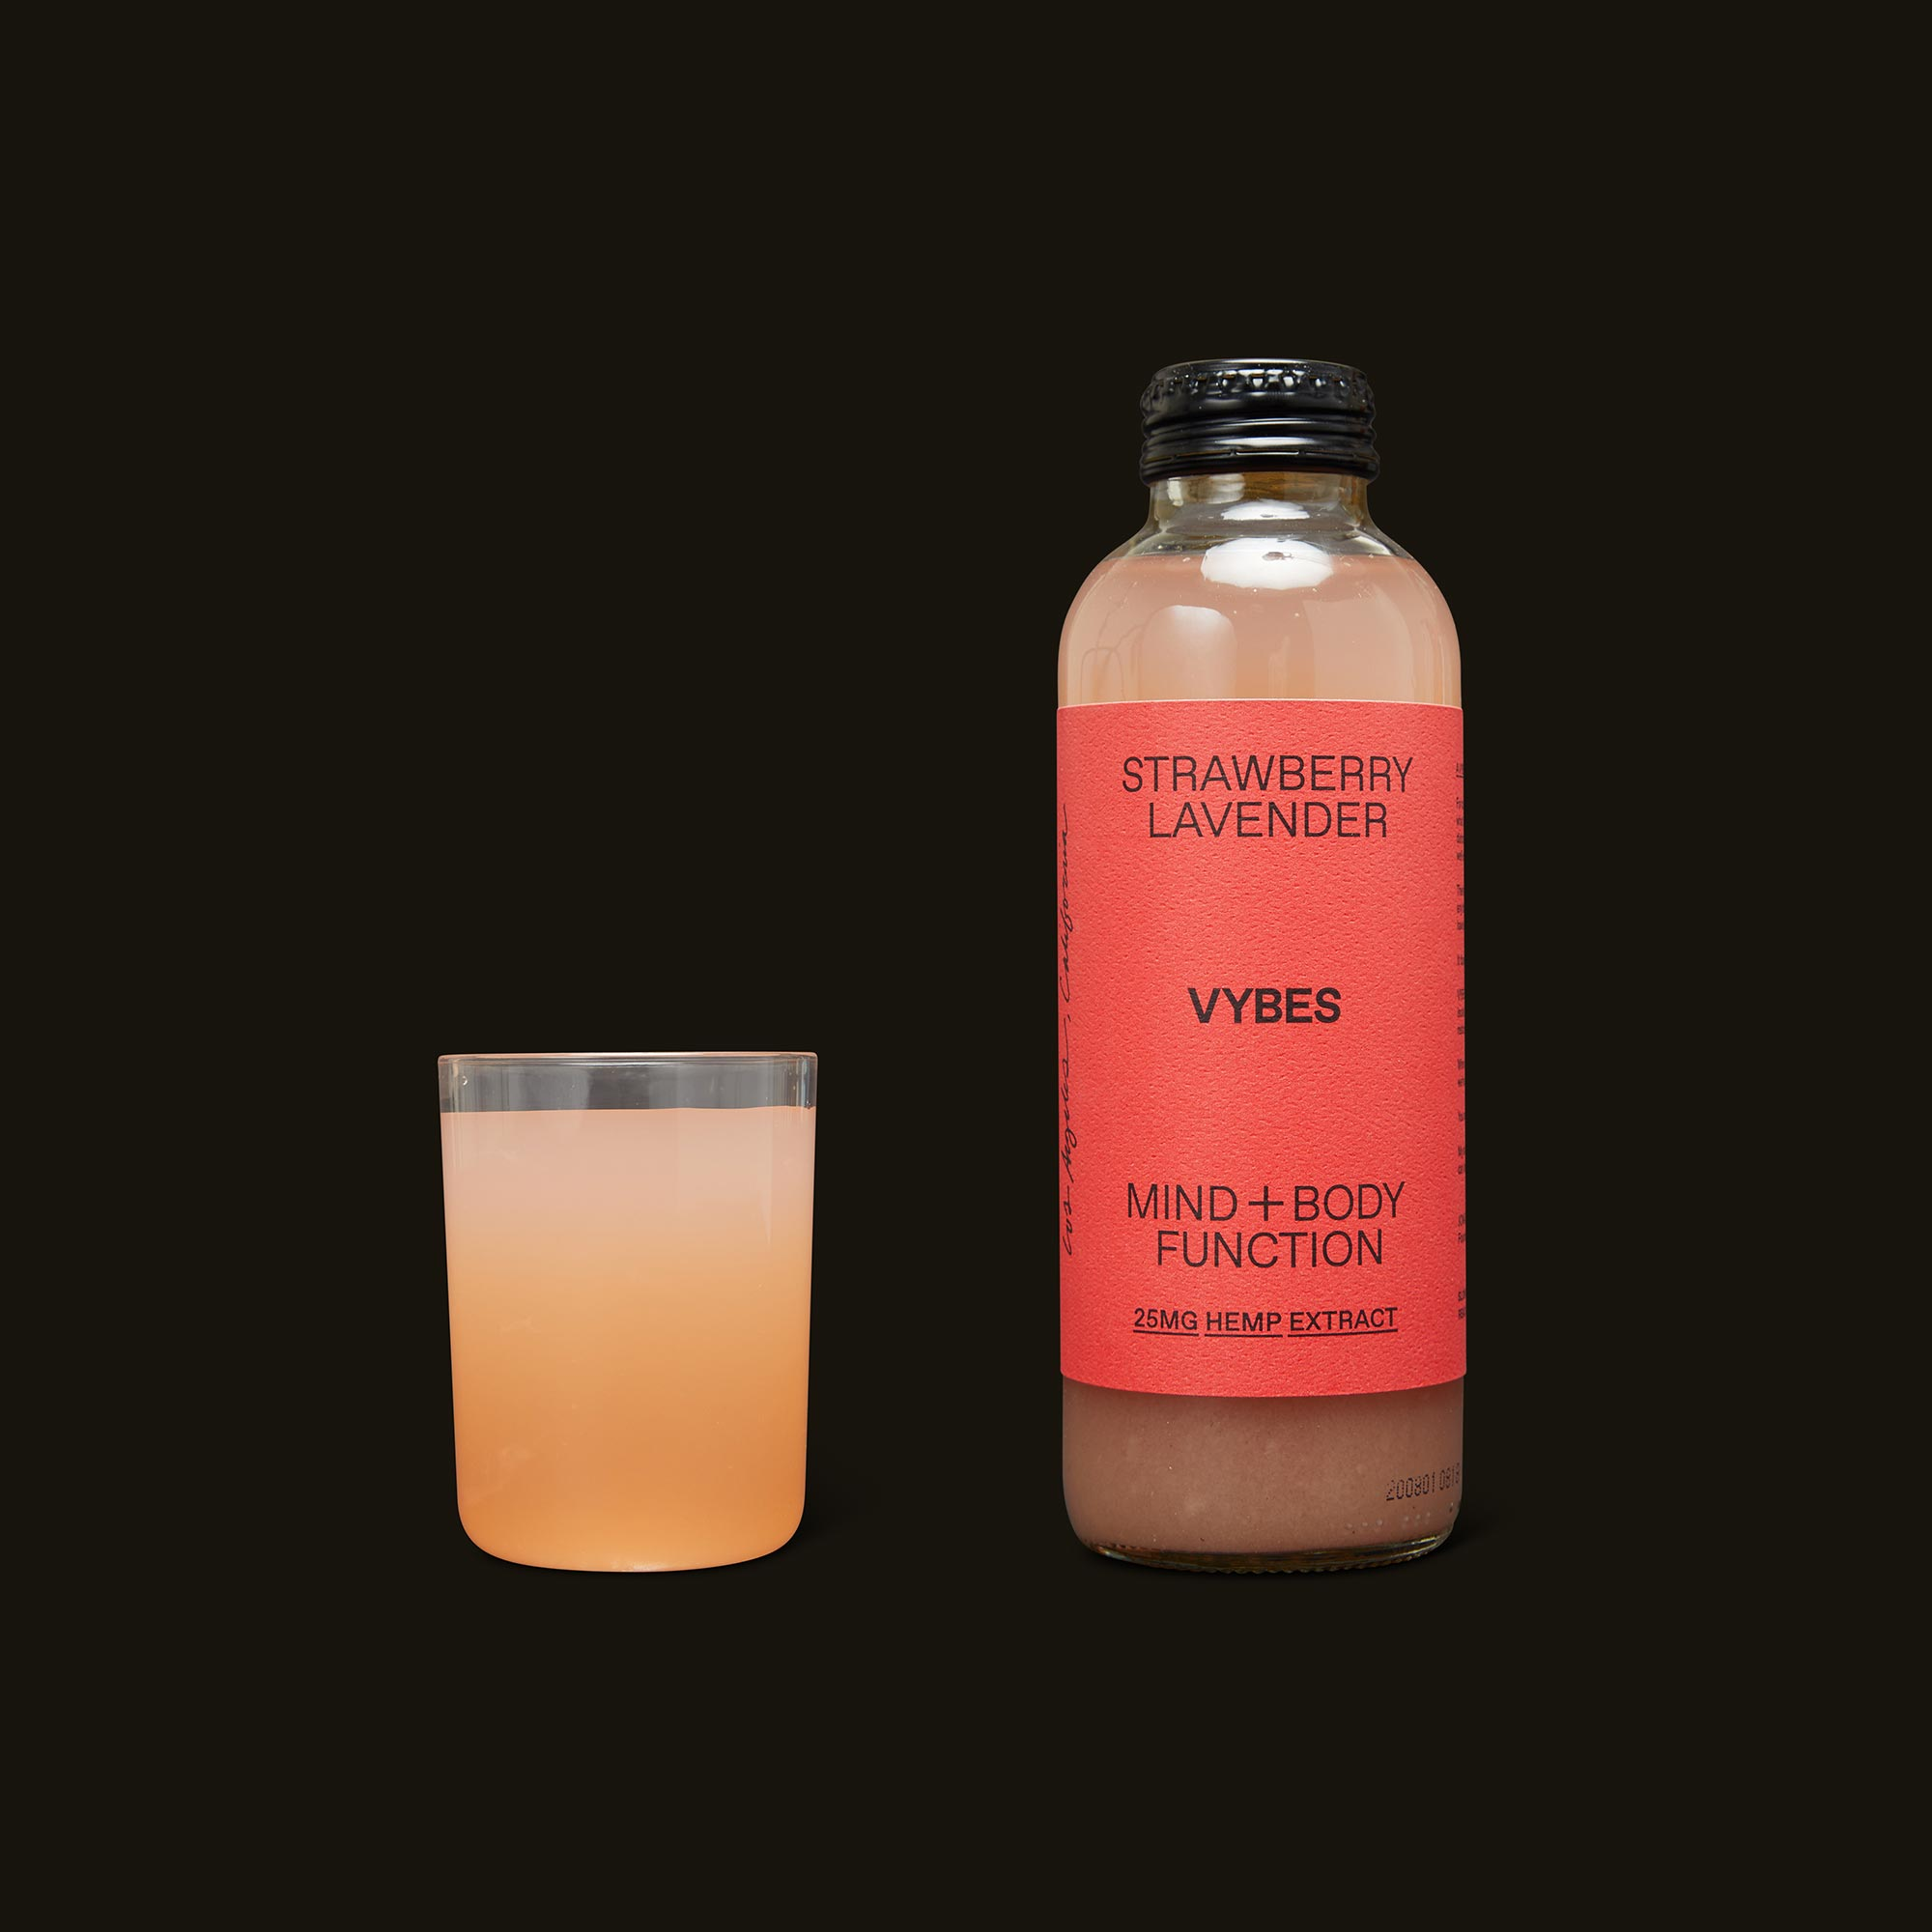 VYBES Strawberry Lavender